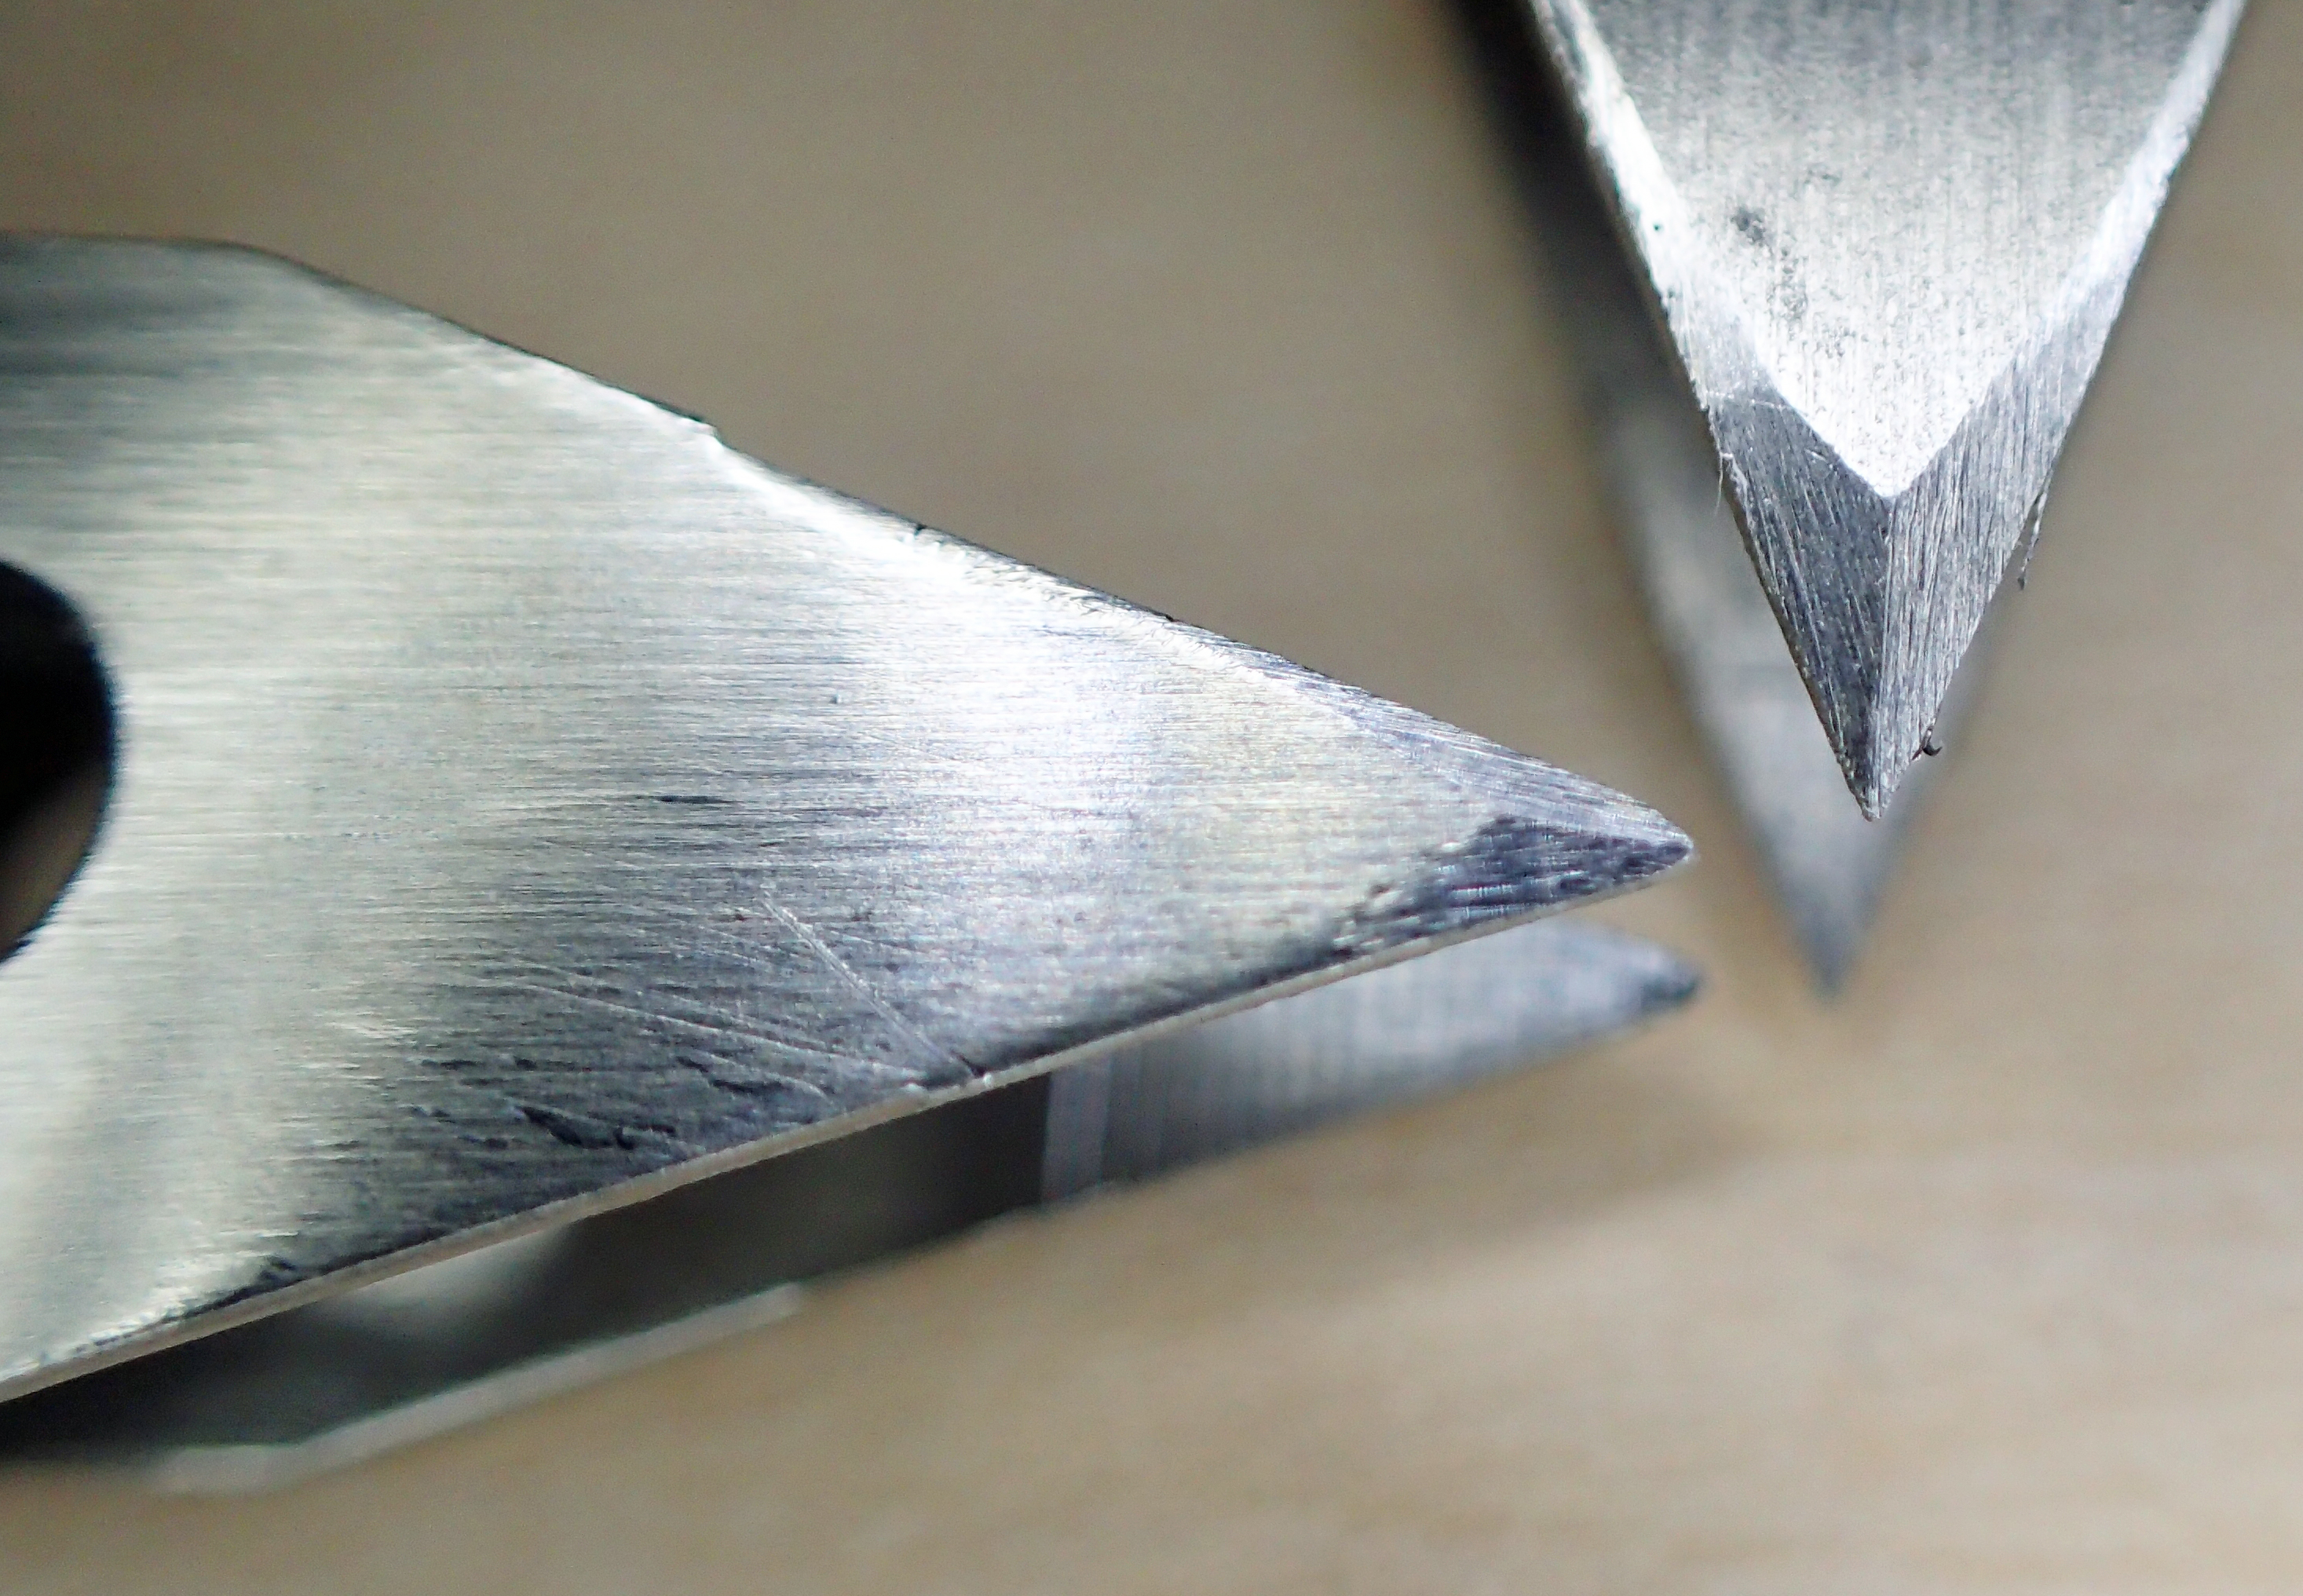 A few minutes with a fine file adding chamfered edges improves the precision points of these tweezers immensely